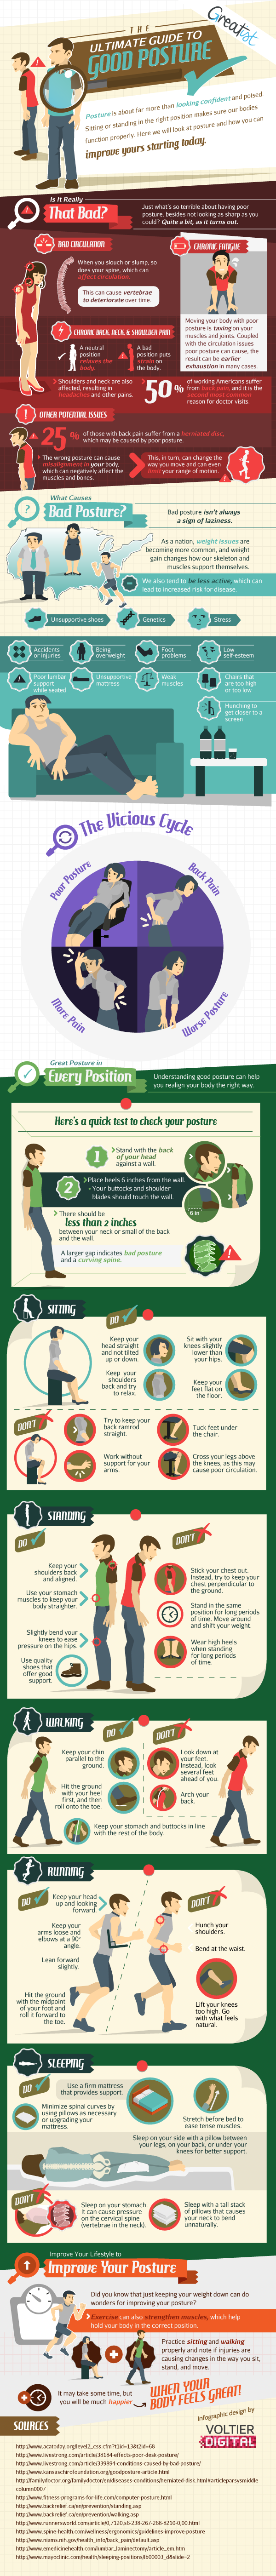 Good Posture Guide Infographic